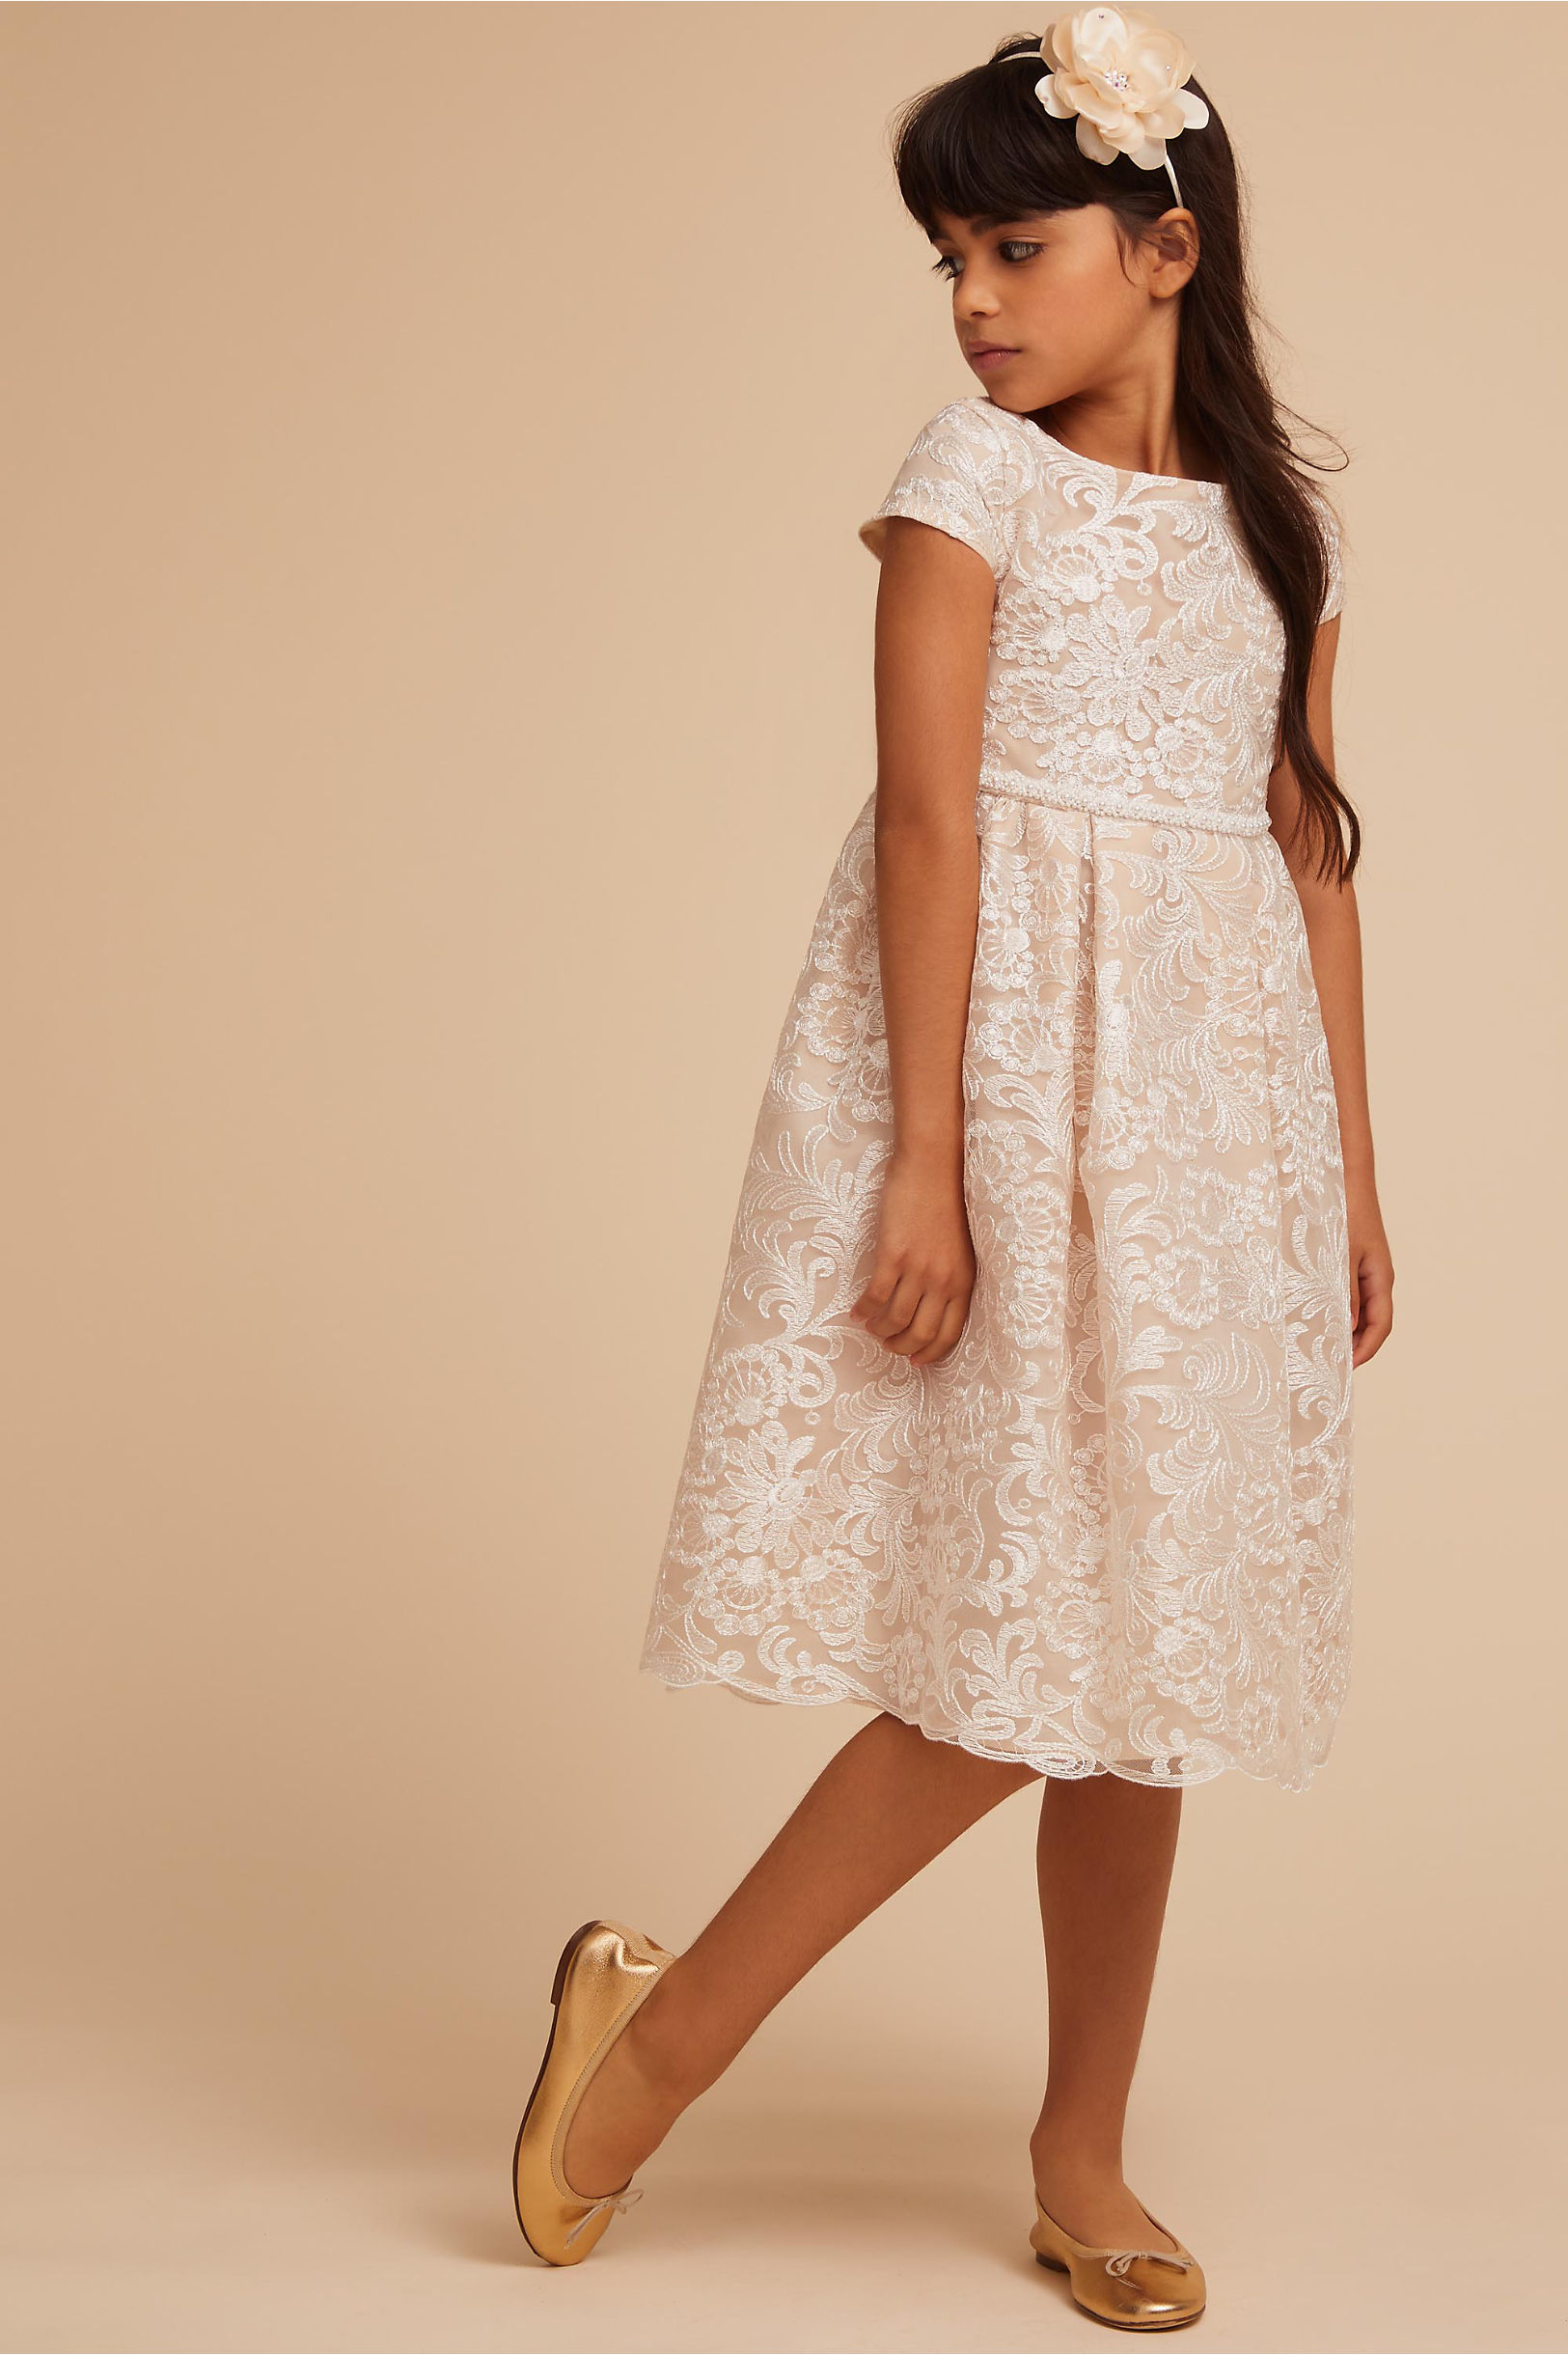 "Short Sleeve Flower Girl Dress, BHLDN ""Aubrie"" Dress"